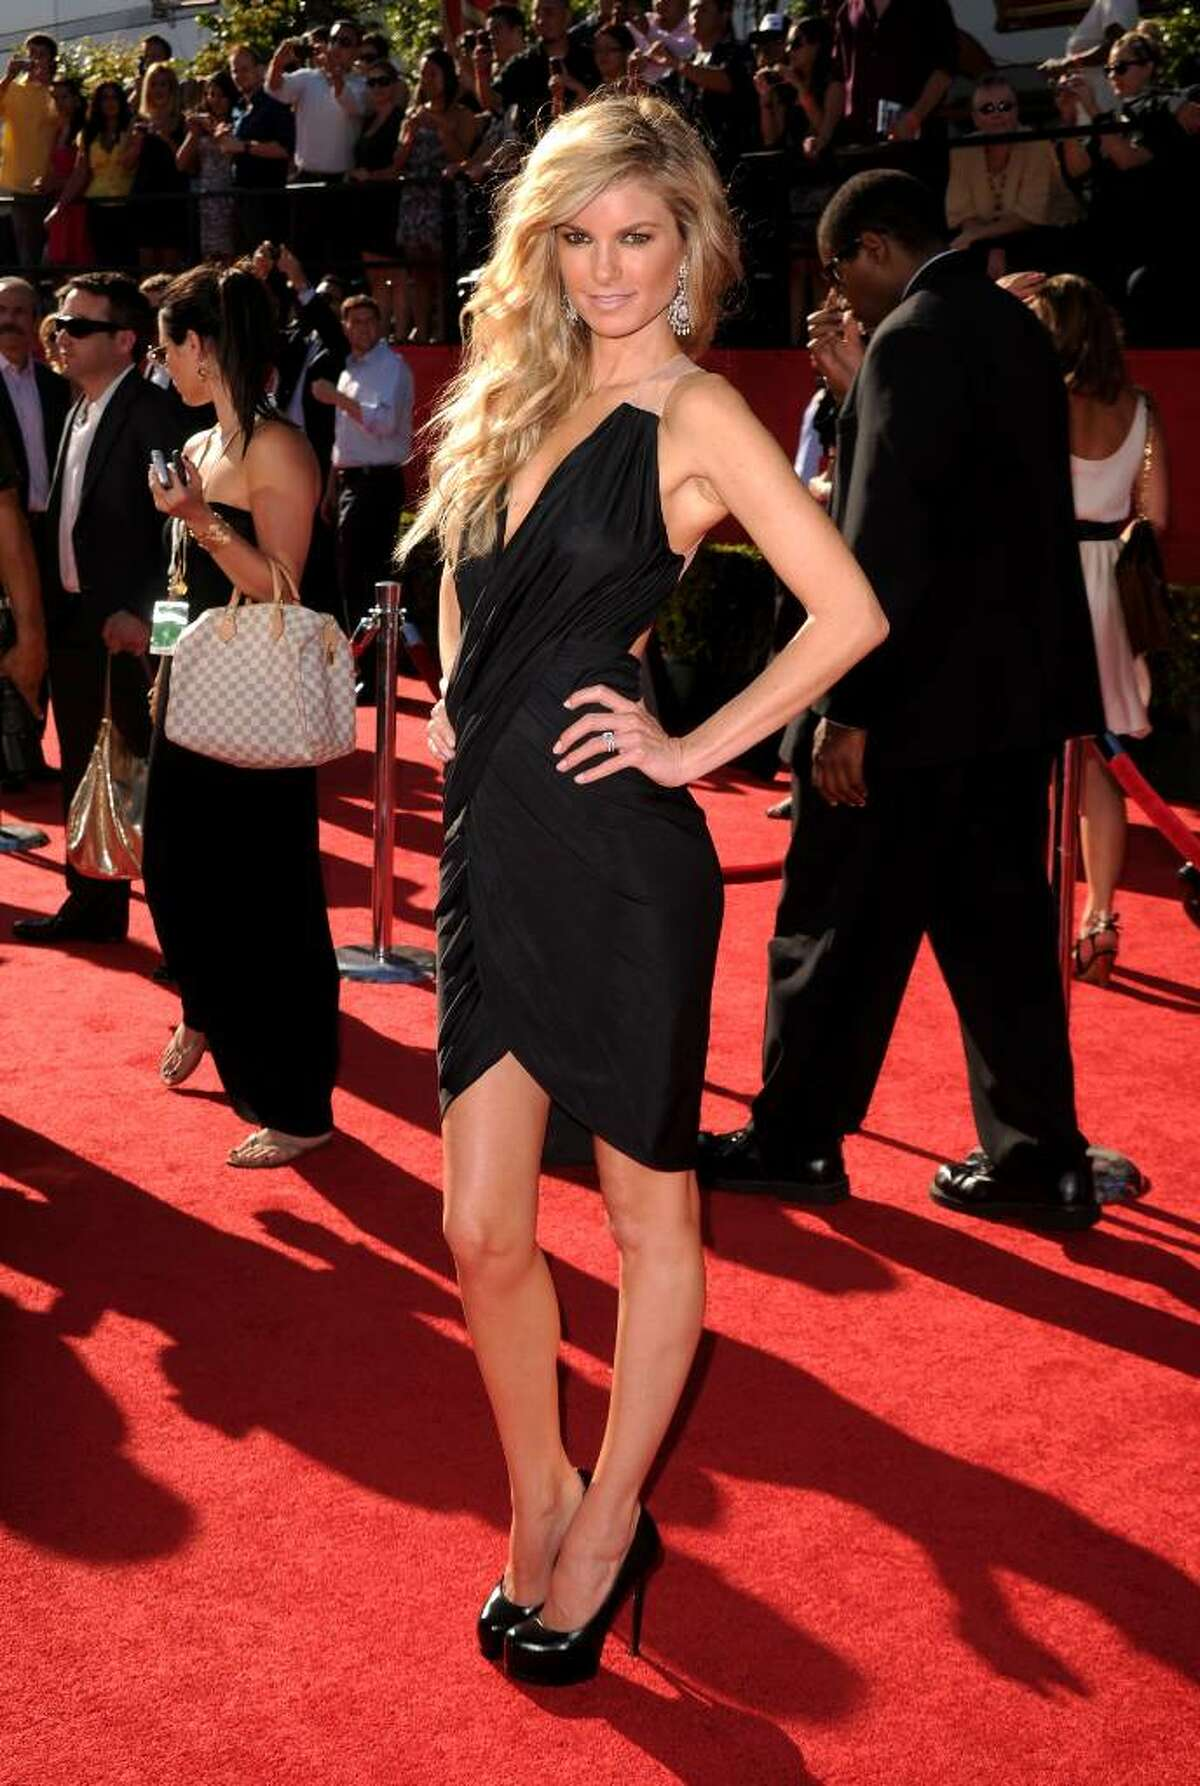 LOS ANGELES, CA - JULY 14: Model Marisa Miller arrives at the 2010 ESPY Awards at Nokia Theatre L.A. Live on July 14, 2010 in Los Angeles, California. (Photo by Jason Merritt/Getty Images) *** Local Caption *** Marisa Miller